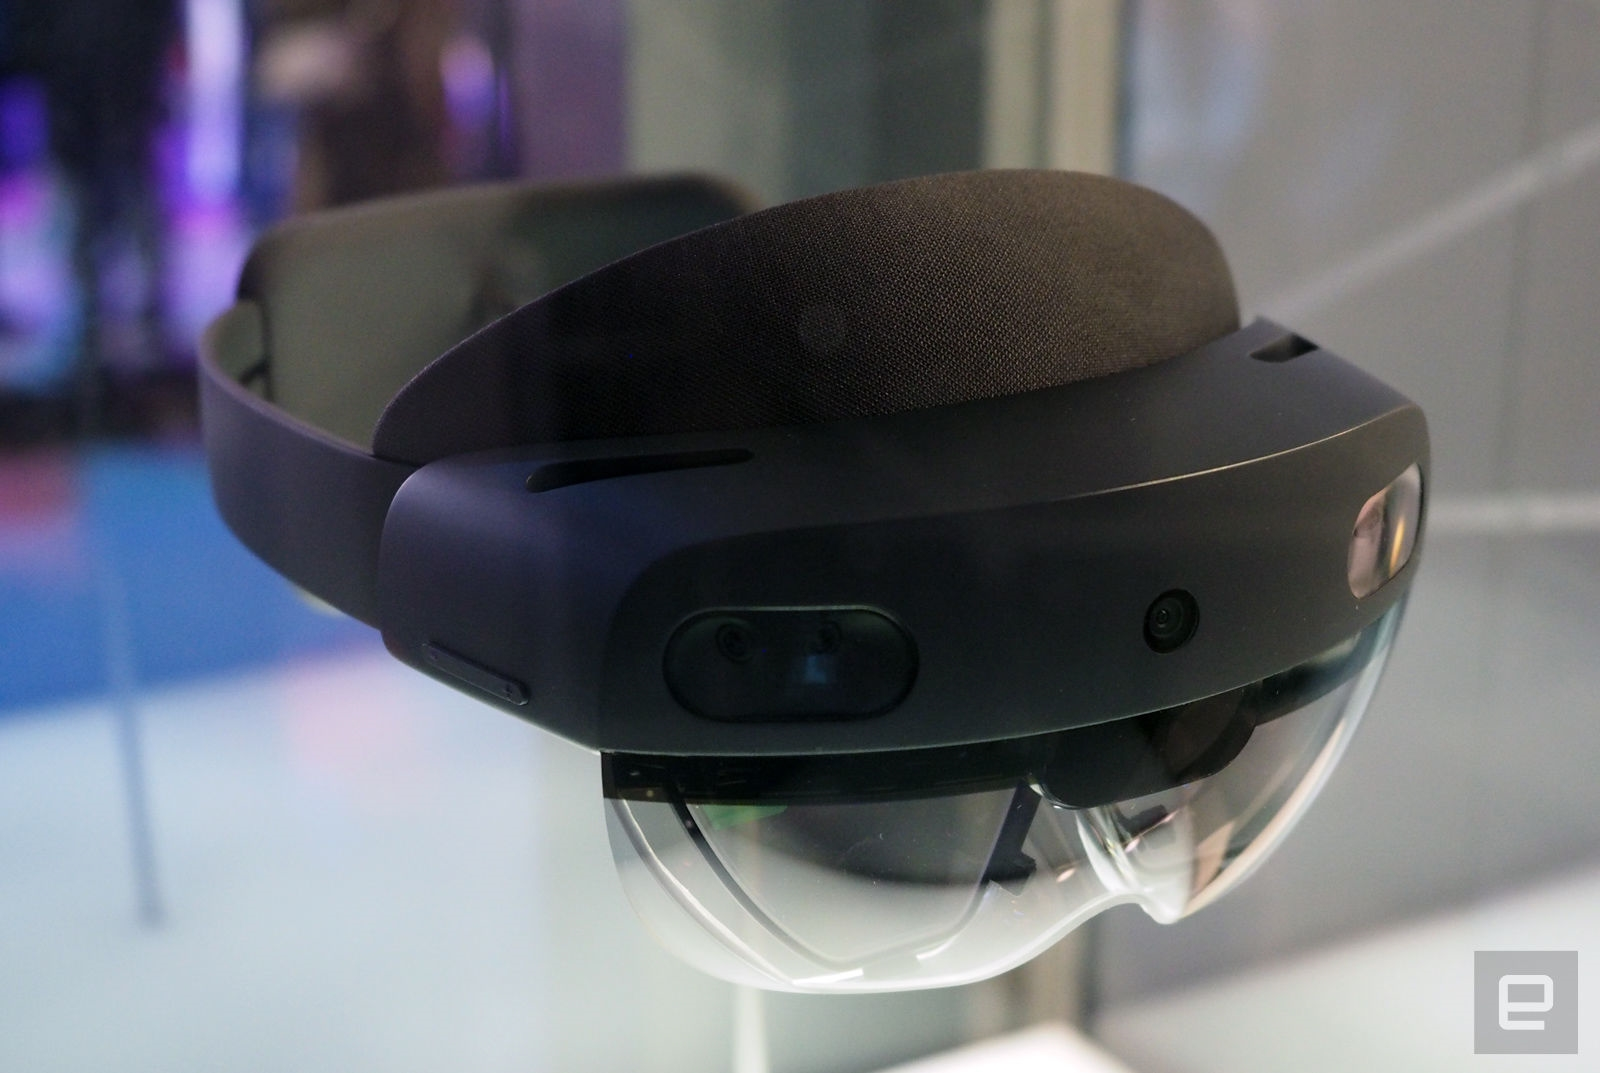 Microsoft HoloLens 2 hands-on: A giant leap closer to mixed reality | DeviceDaily.com